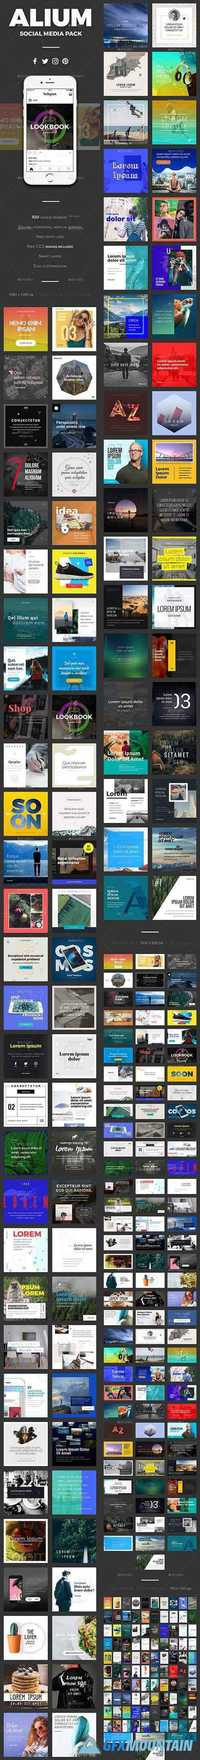 Graphicriver ALIUM Social Media Pack FULL 19727784